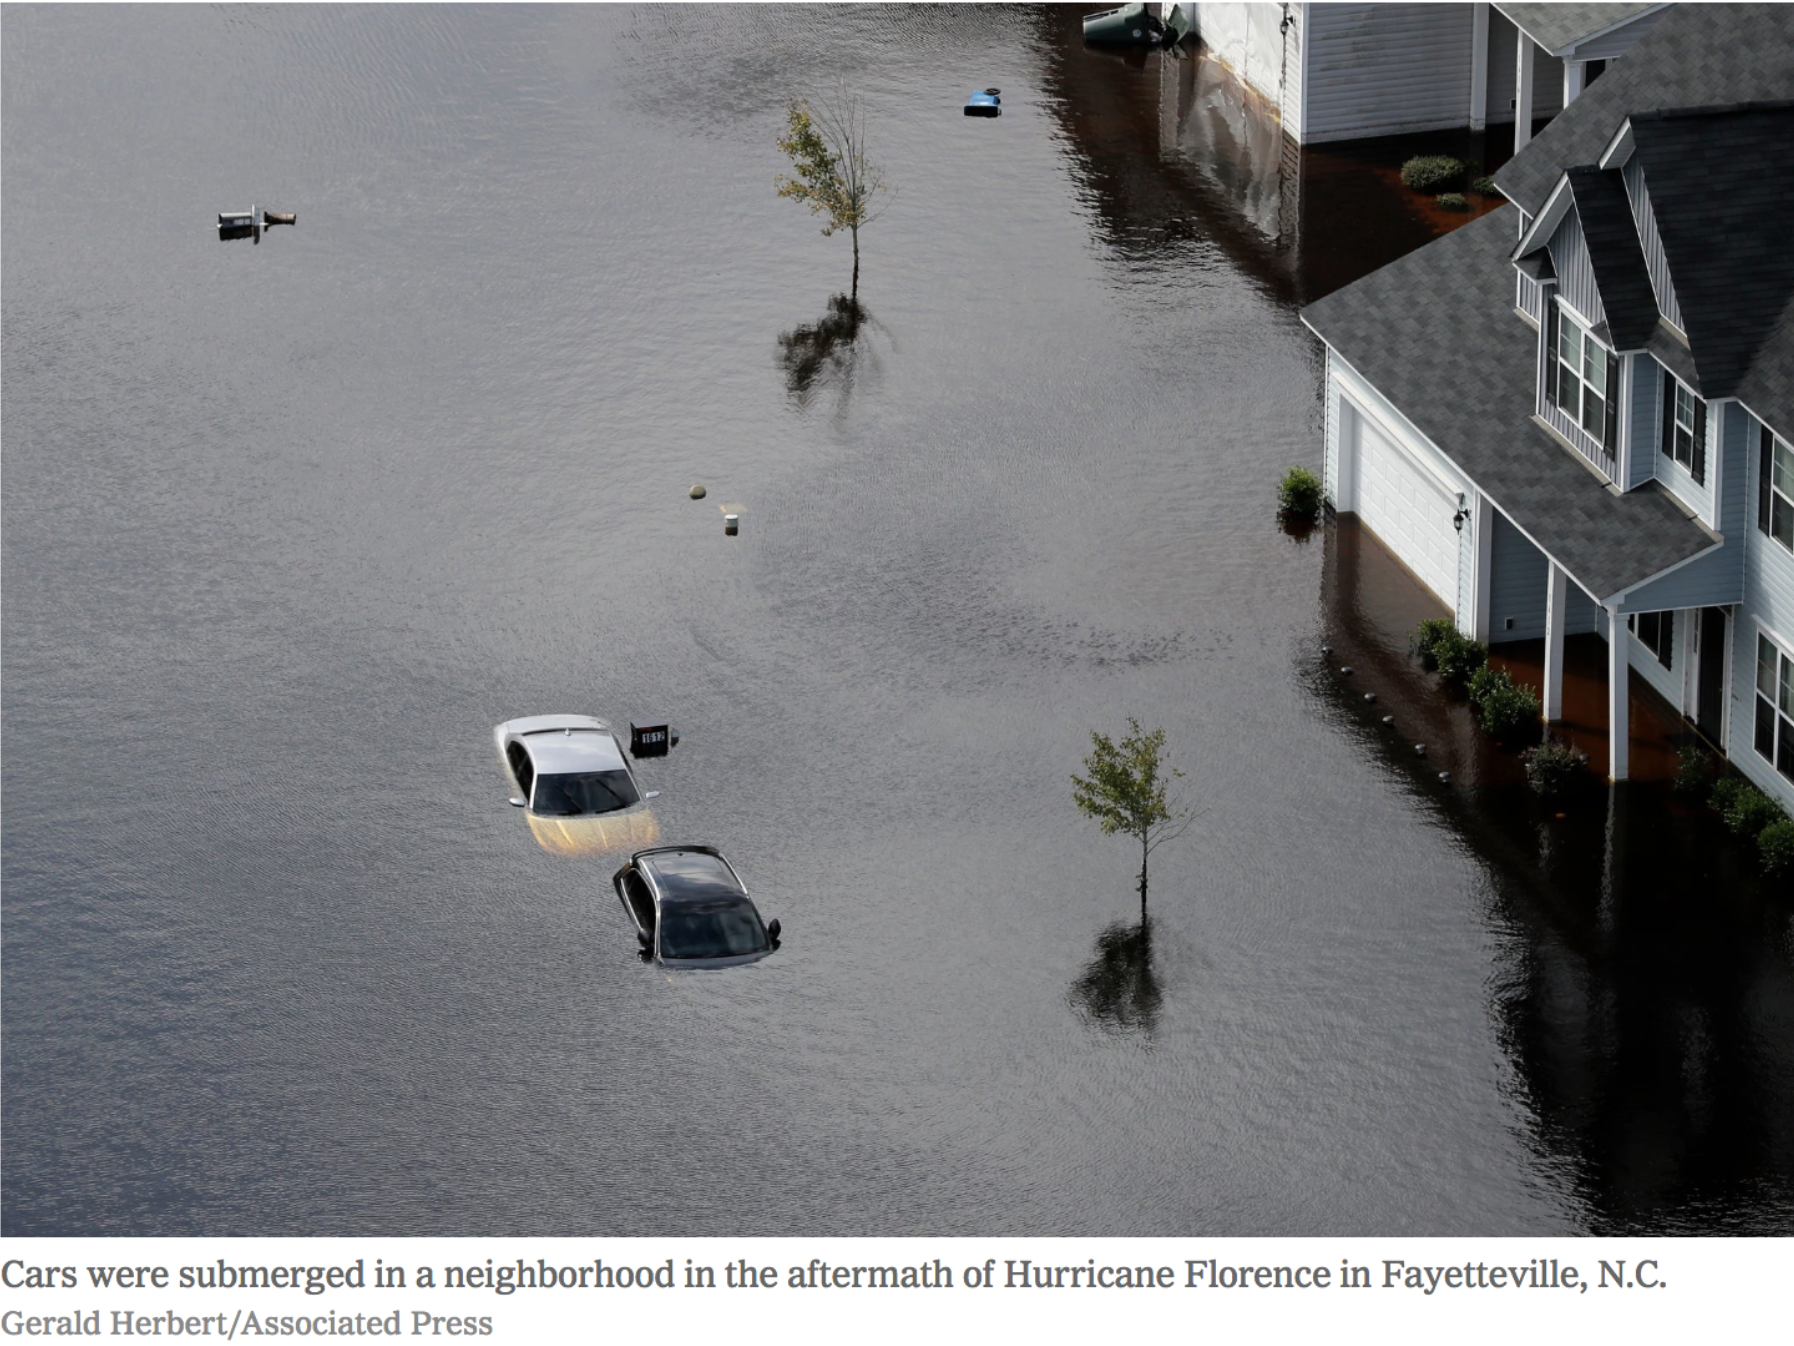 Fayetteville, North Carolina after flooding from Hurricane Florence